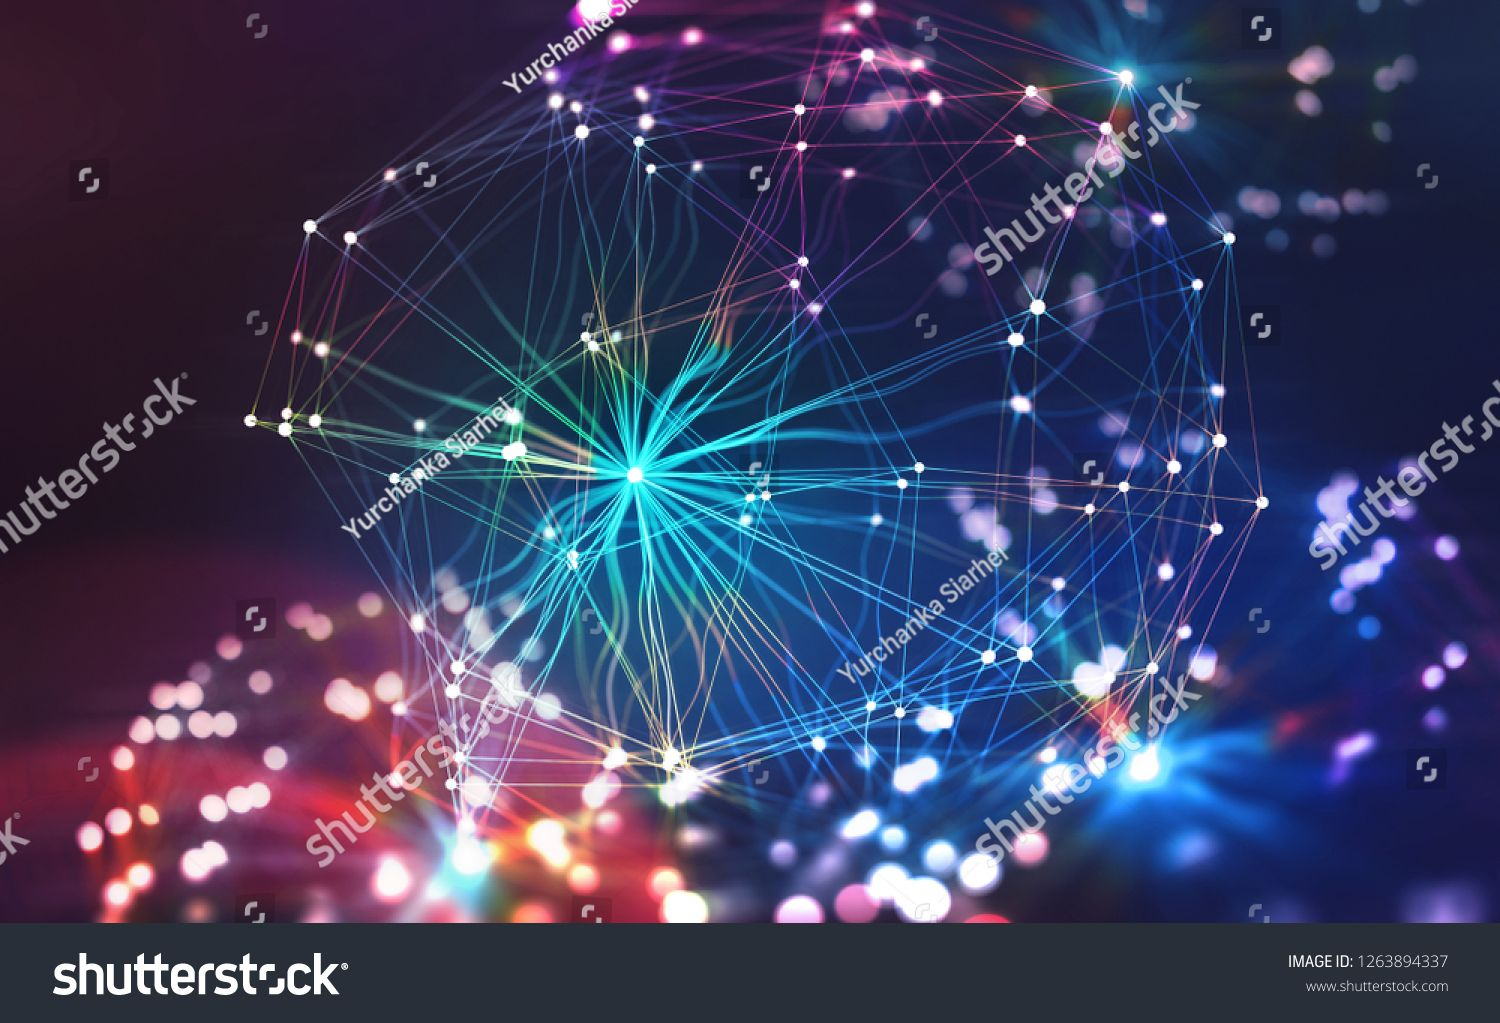 Artificial Neural Network Big Data Concept Artificial Intelligence In The Technolog Artificial Neural Network Bokeh Effect Artificial Intelligence Technology